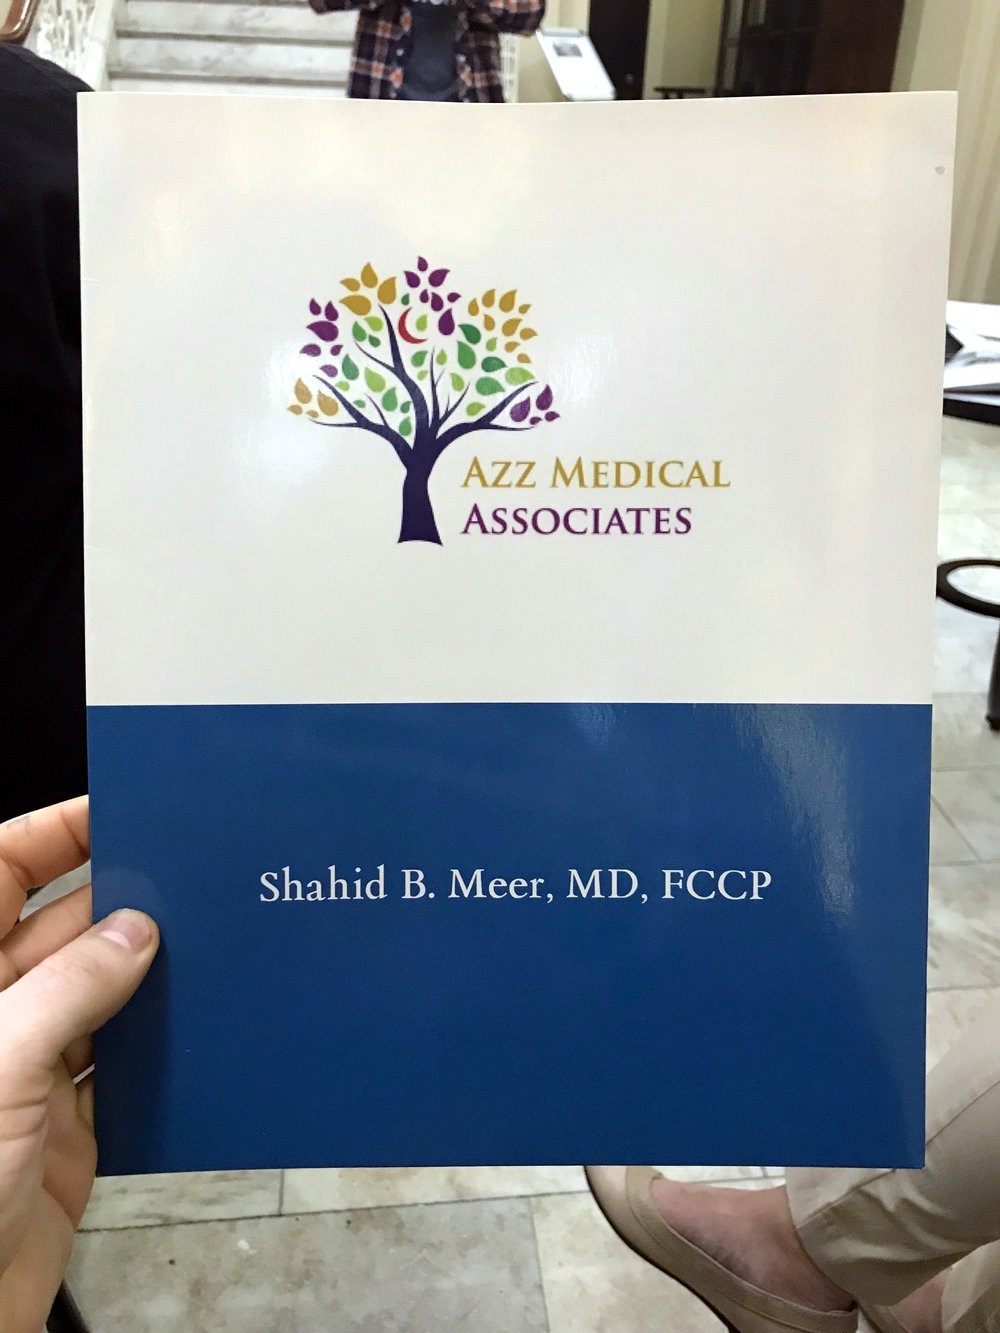 Dr. Meer is an advocate for cannabis in Ewing, NJ. His specialties include  Pulmonary Disease  and  Internal Medicine.  He practices at   AZZ MEDICAL ASSOCIATES, 1440 Pennington Rd Set 1 Ewing, NJ 08618    /    (609) 890-1050